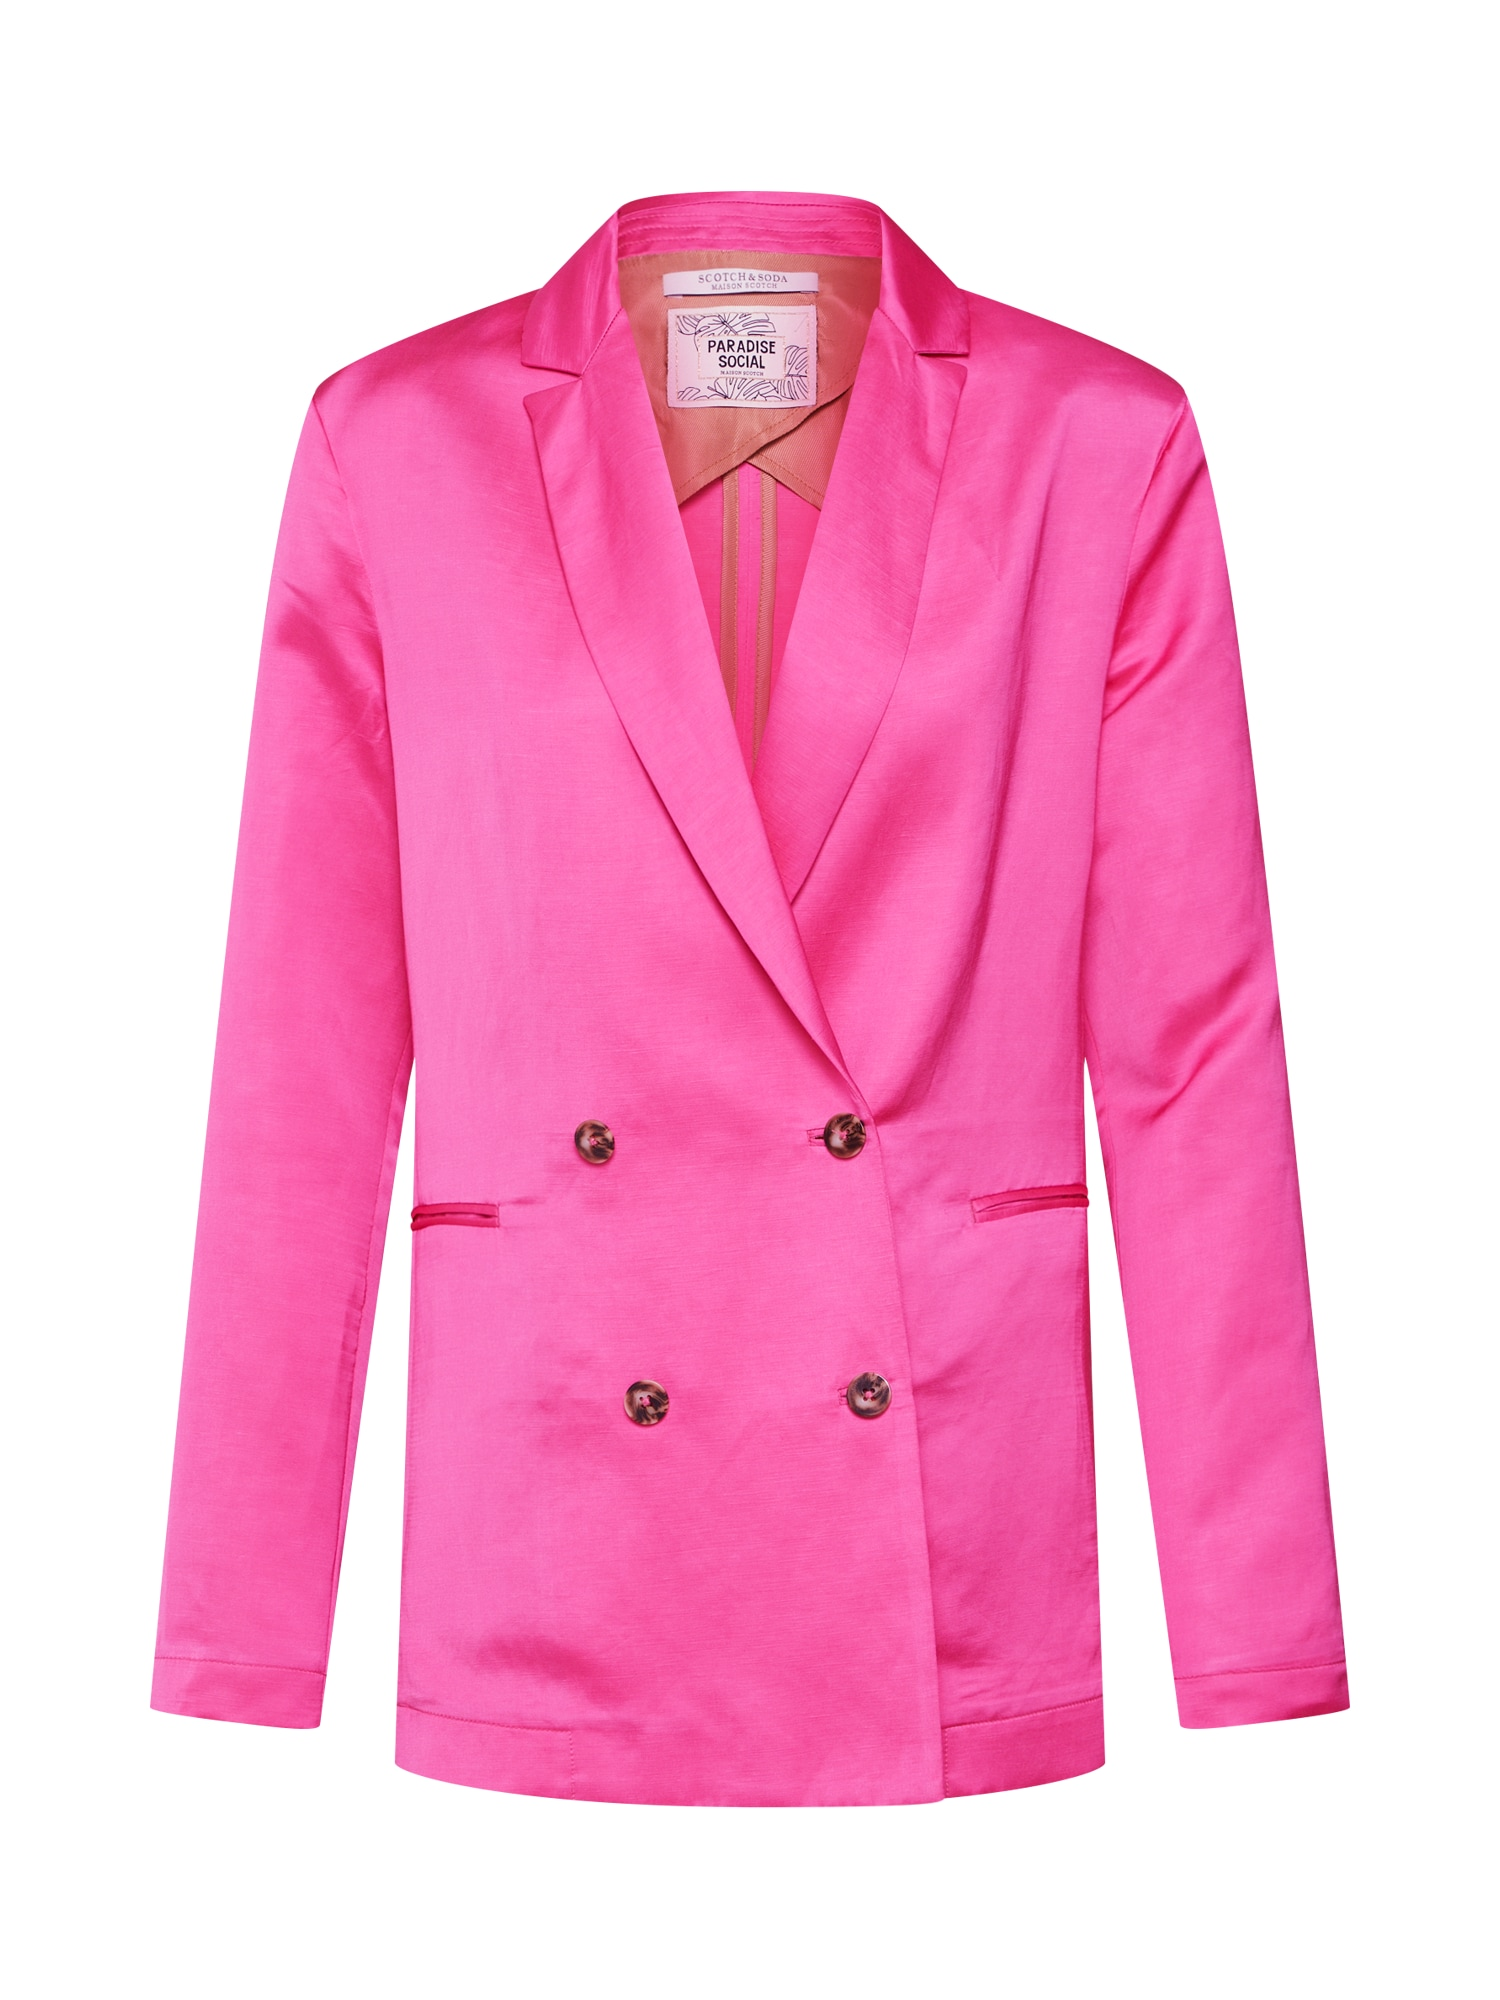 Blejzr Double breasted blazer in viscose-linen blend pink SCOTCH & SODA